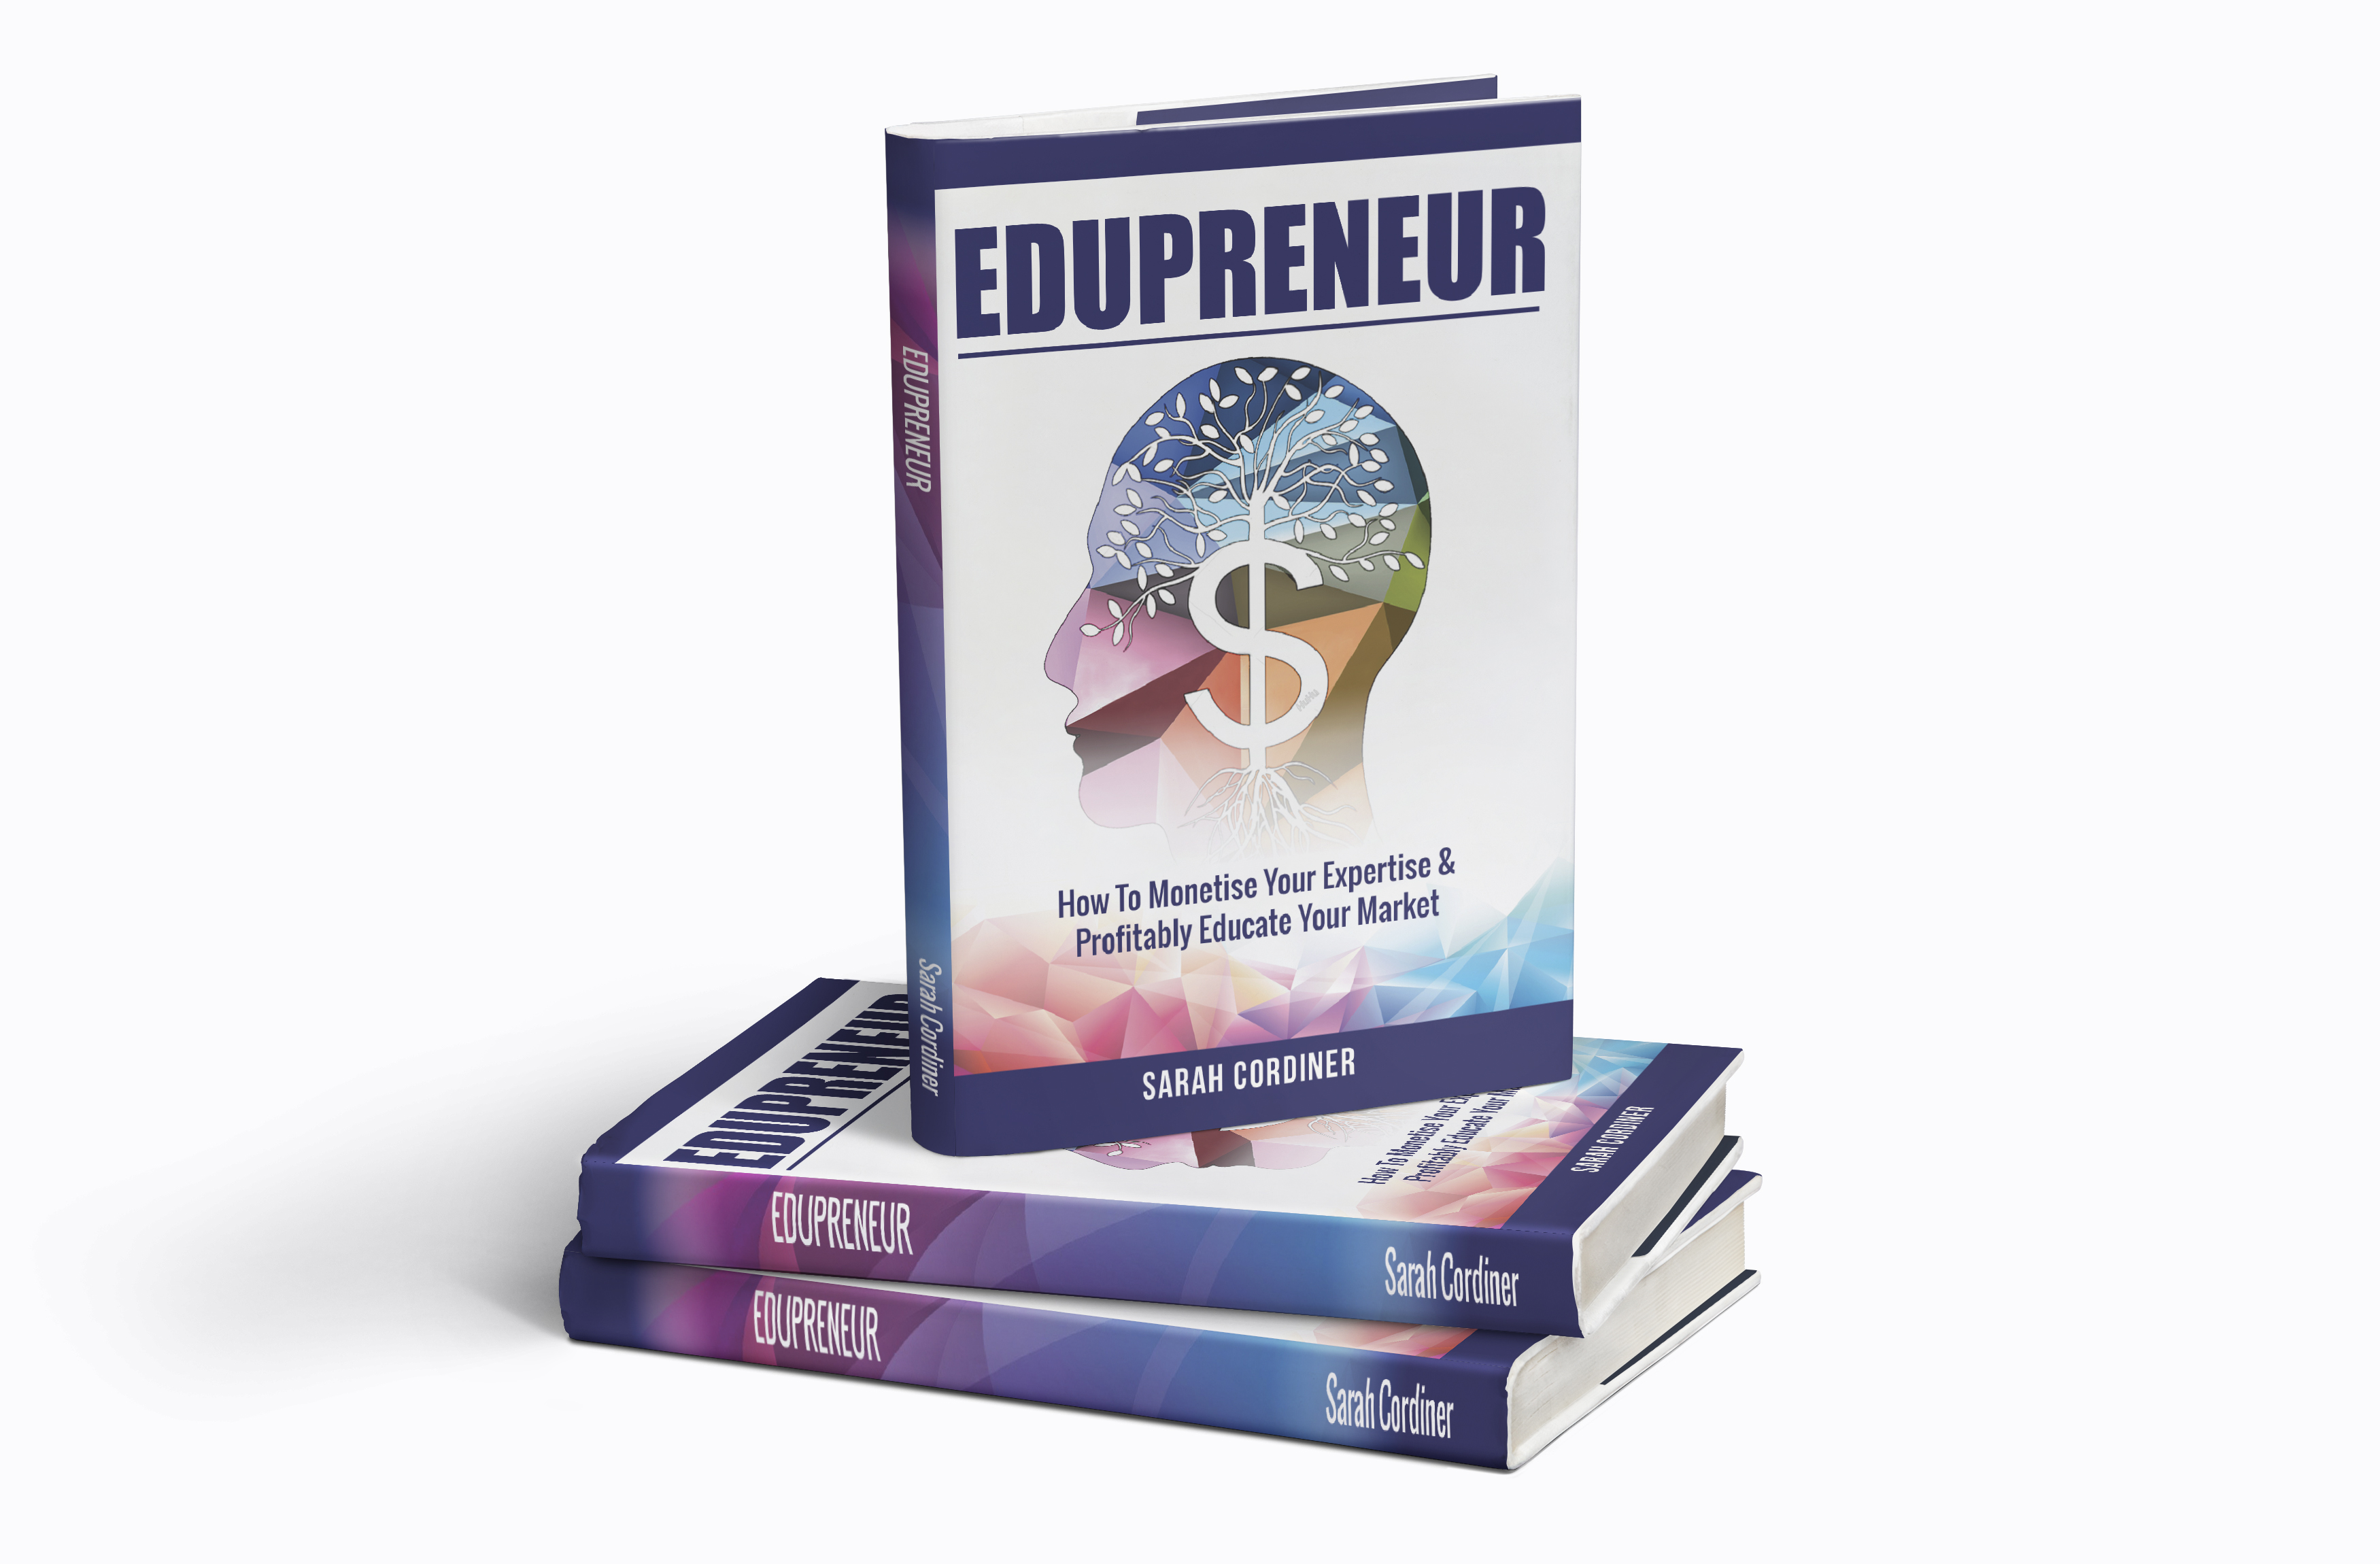 edupreneur front cover book 3d image